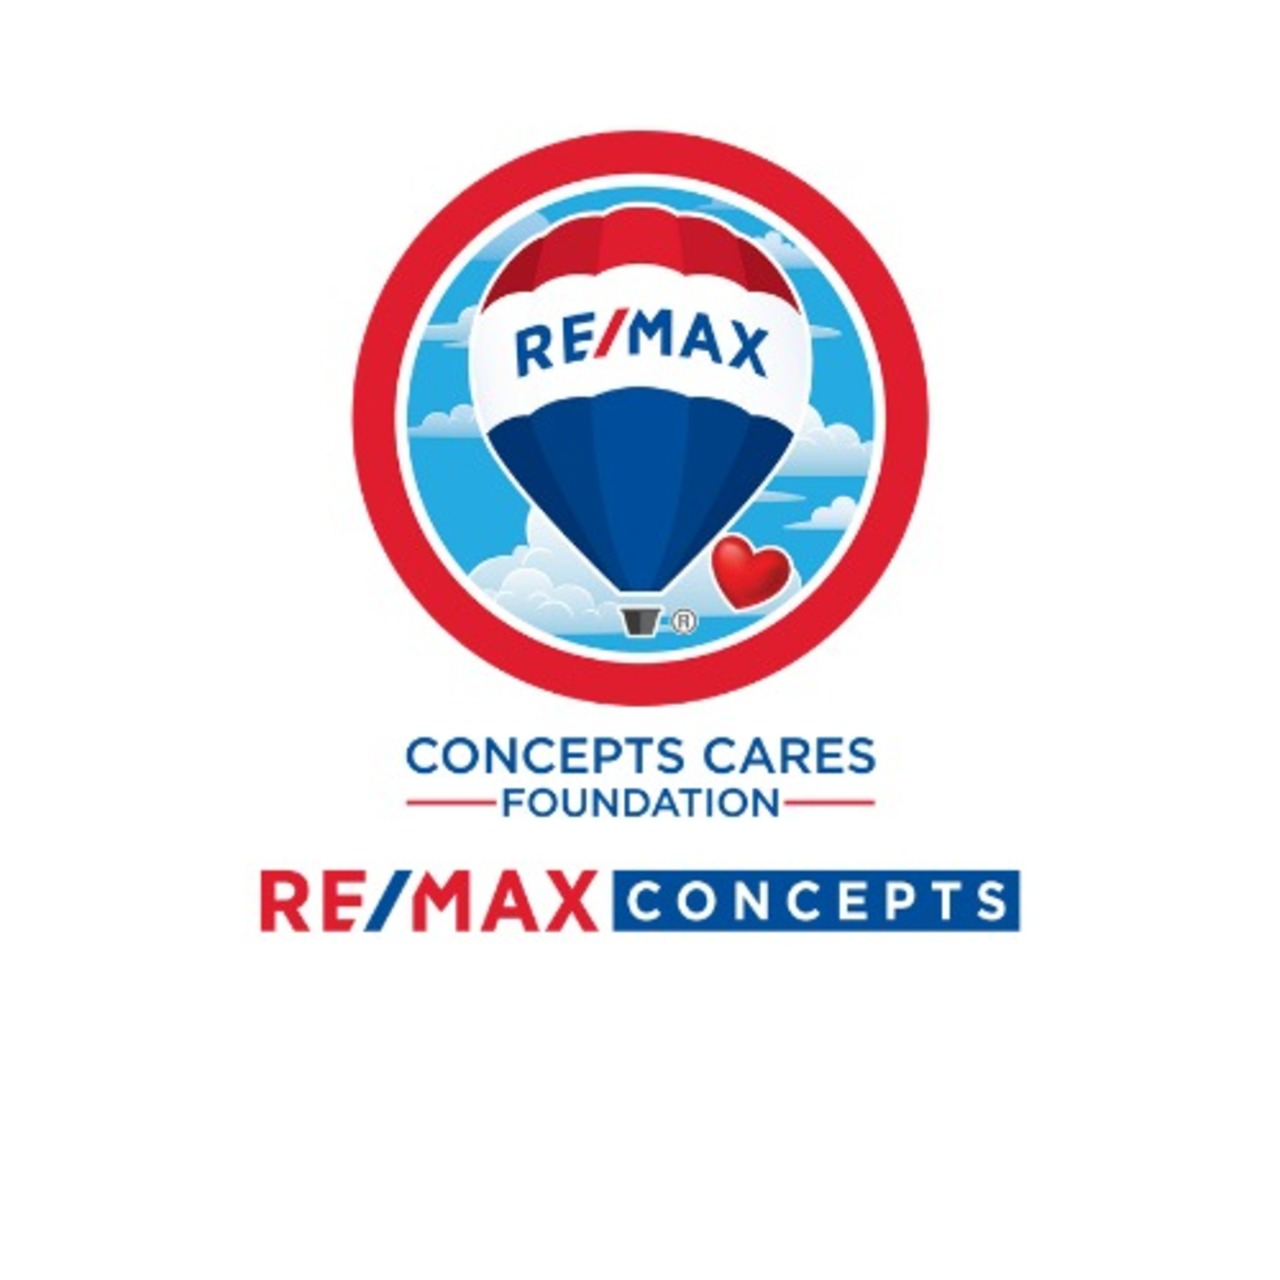 RE/MAX Concepts and Concepts Cares Foundation